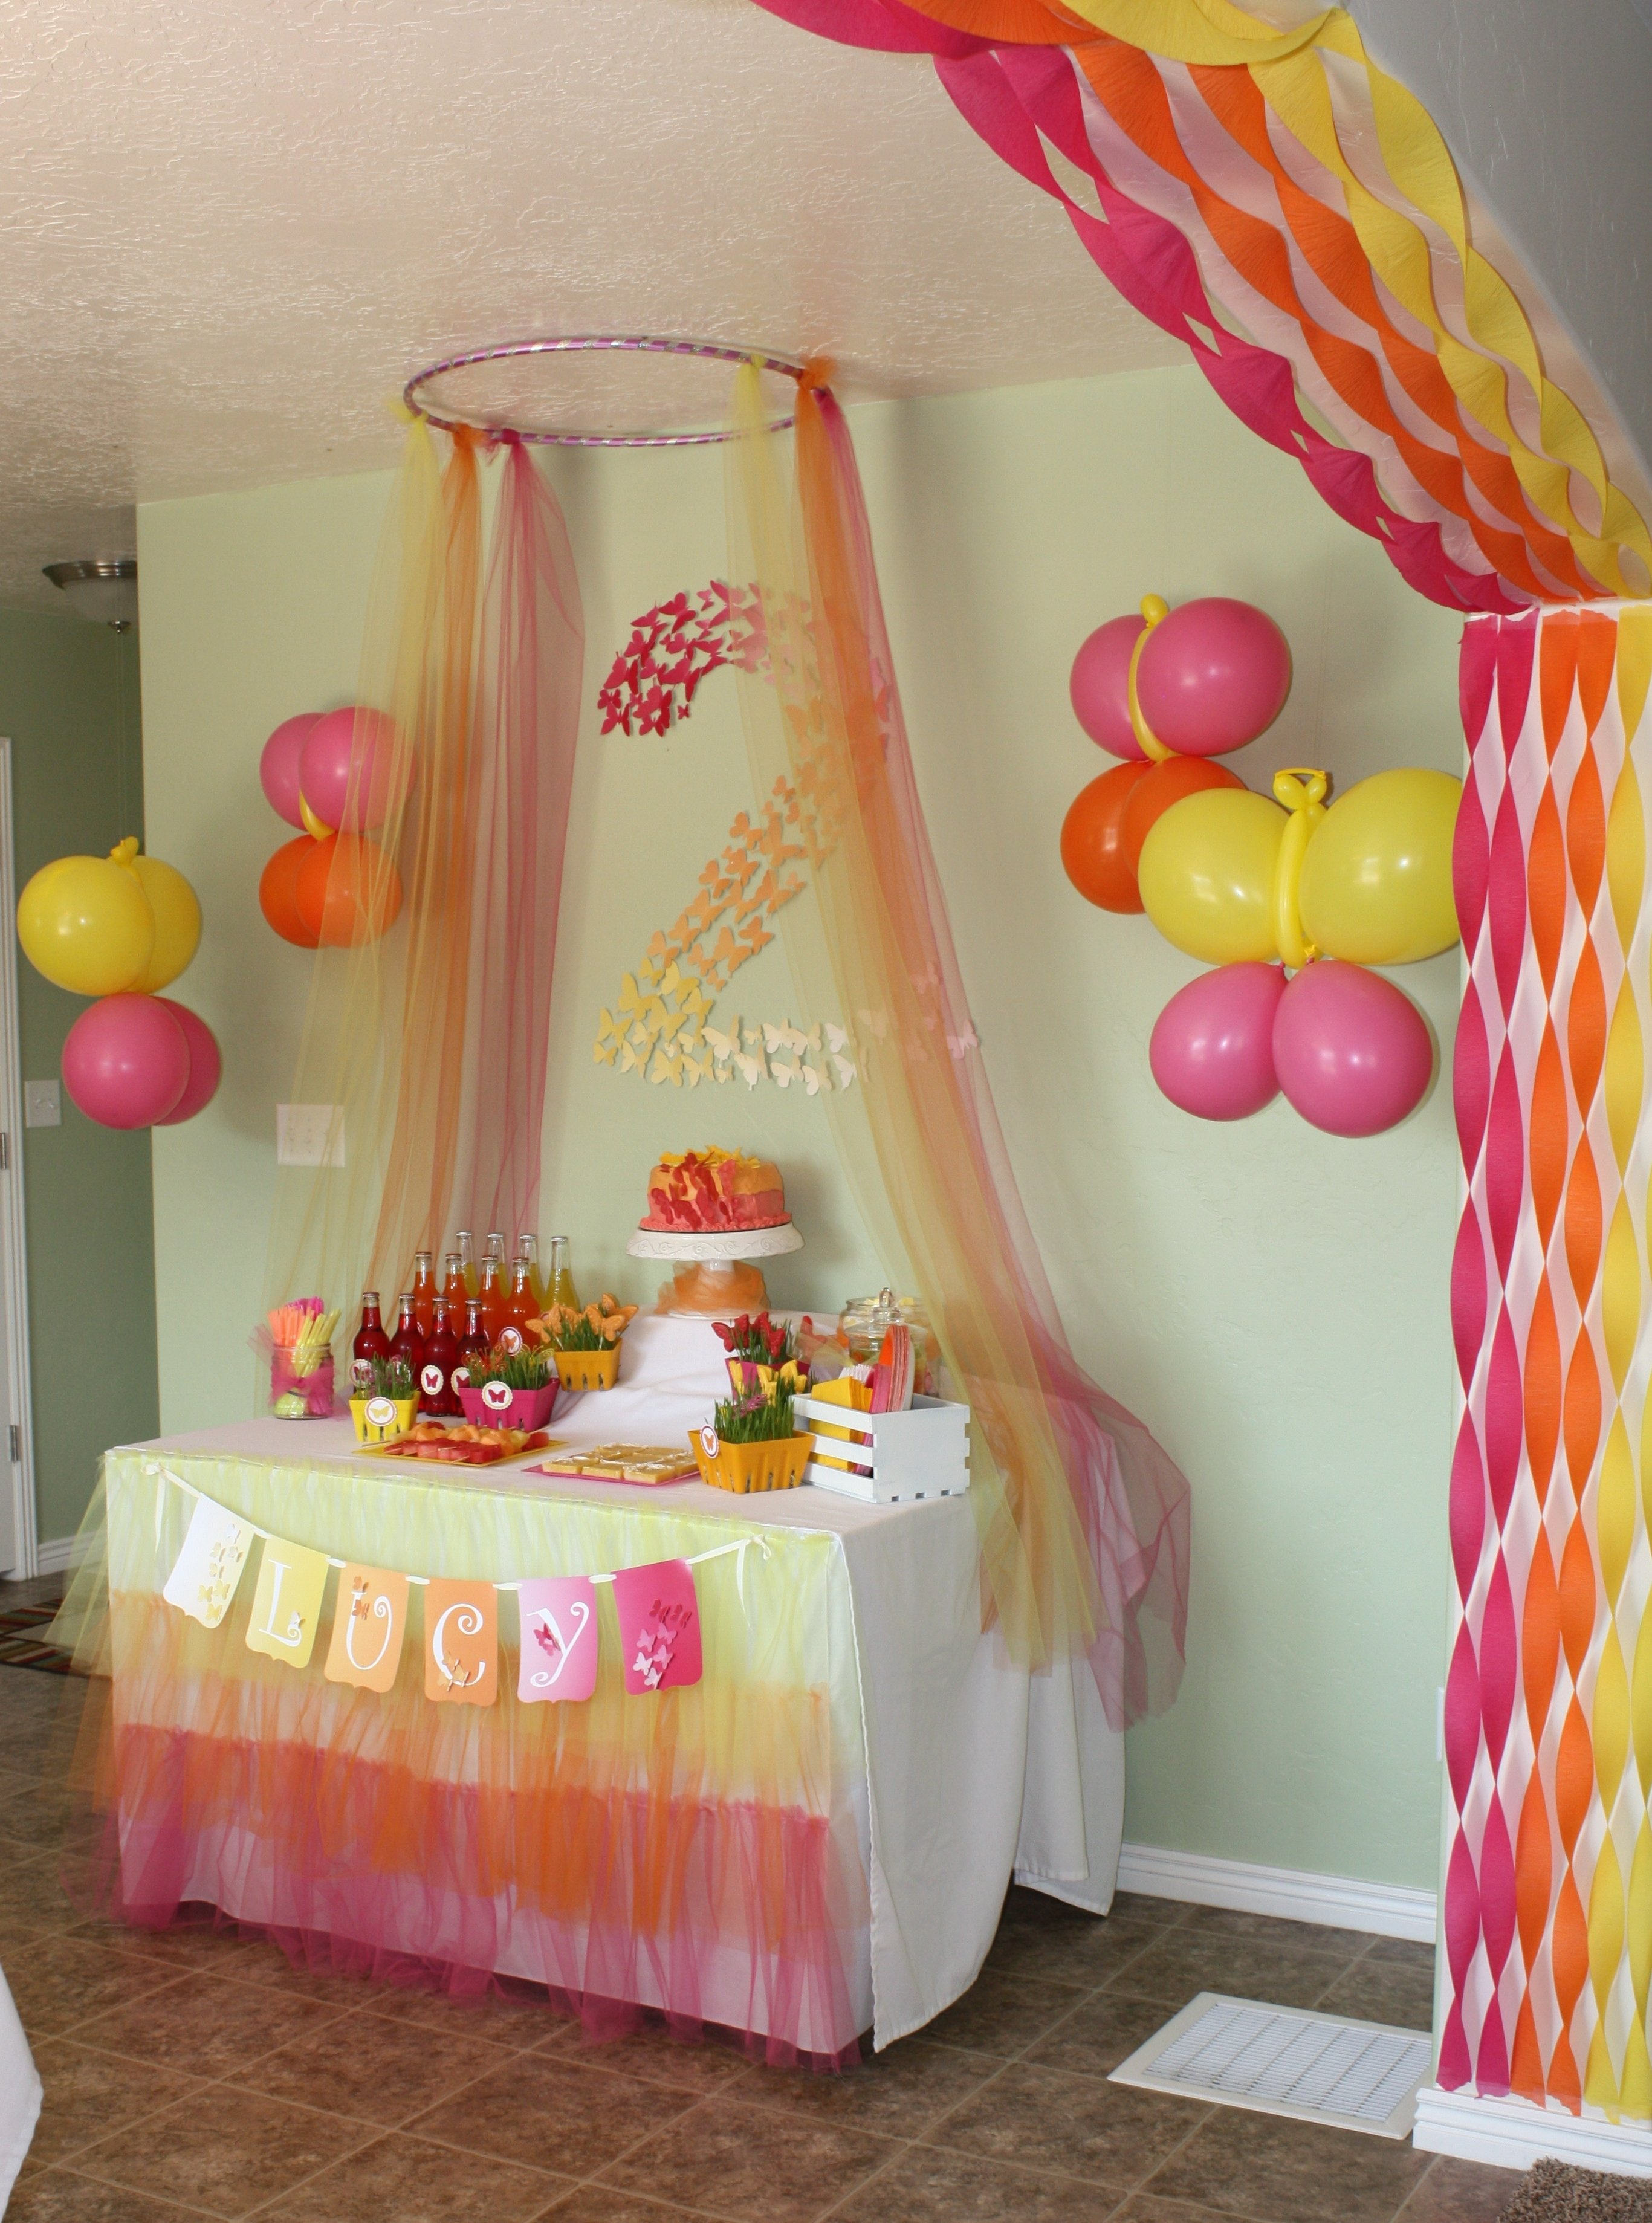 10 Stunning Decorating Ideas For A Birthday Party birthday party decoration ideas nice butterfly themed decorations